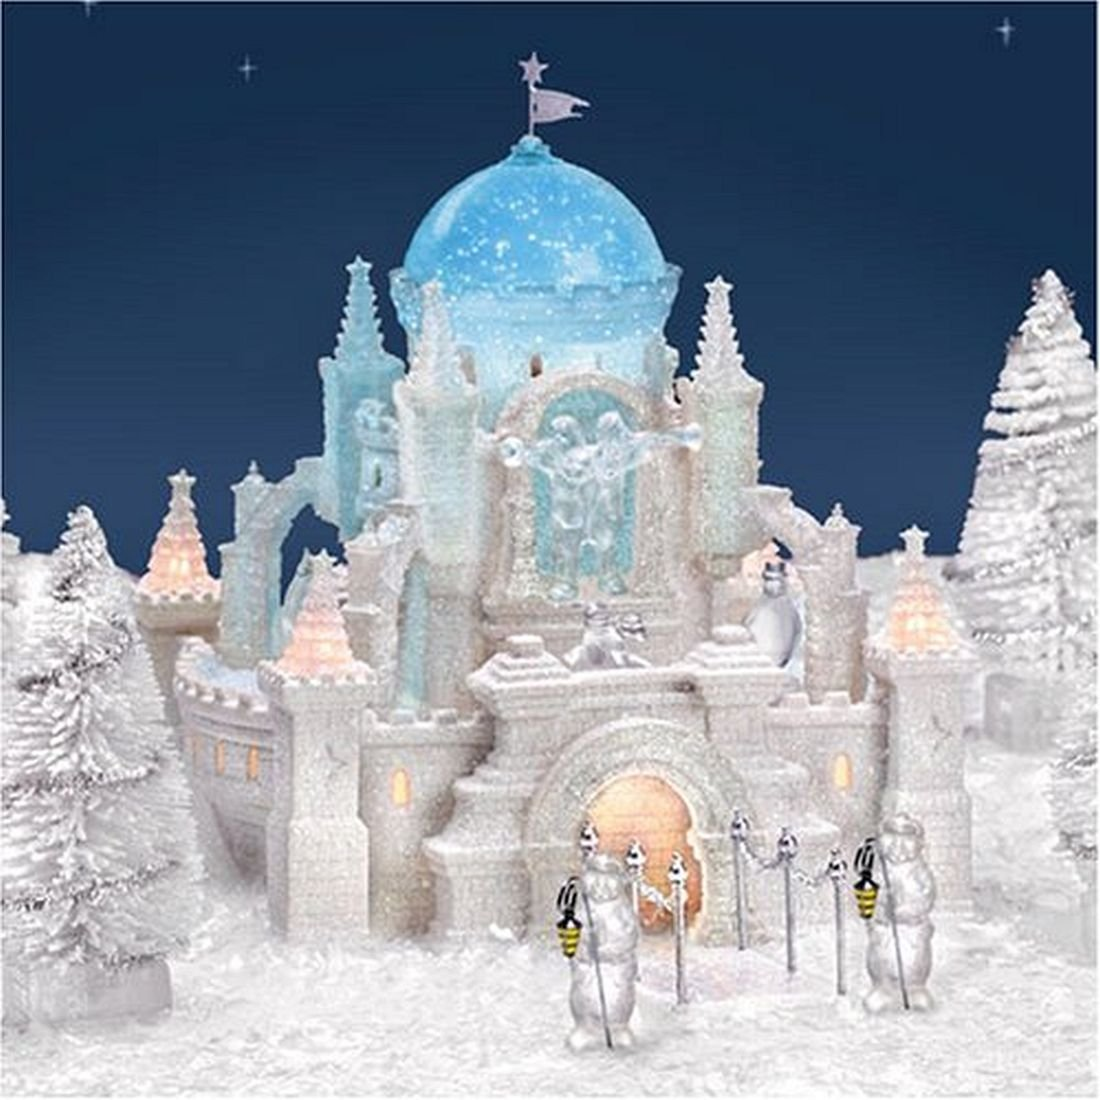 Crystal Ice Palace, Discover Department 56 25th Anniversary Special Edition Gift Set, 9 Piece Set, 58922, D56, Snow Village, Limited Edition, Heritage Village, Retired Collectible